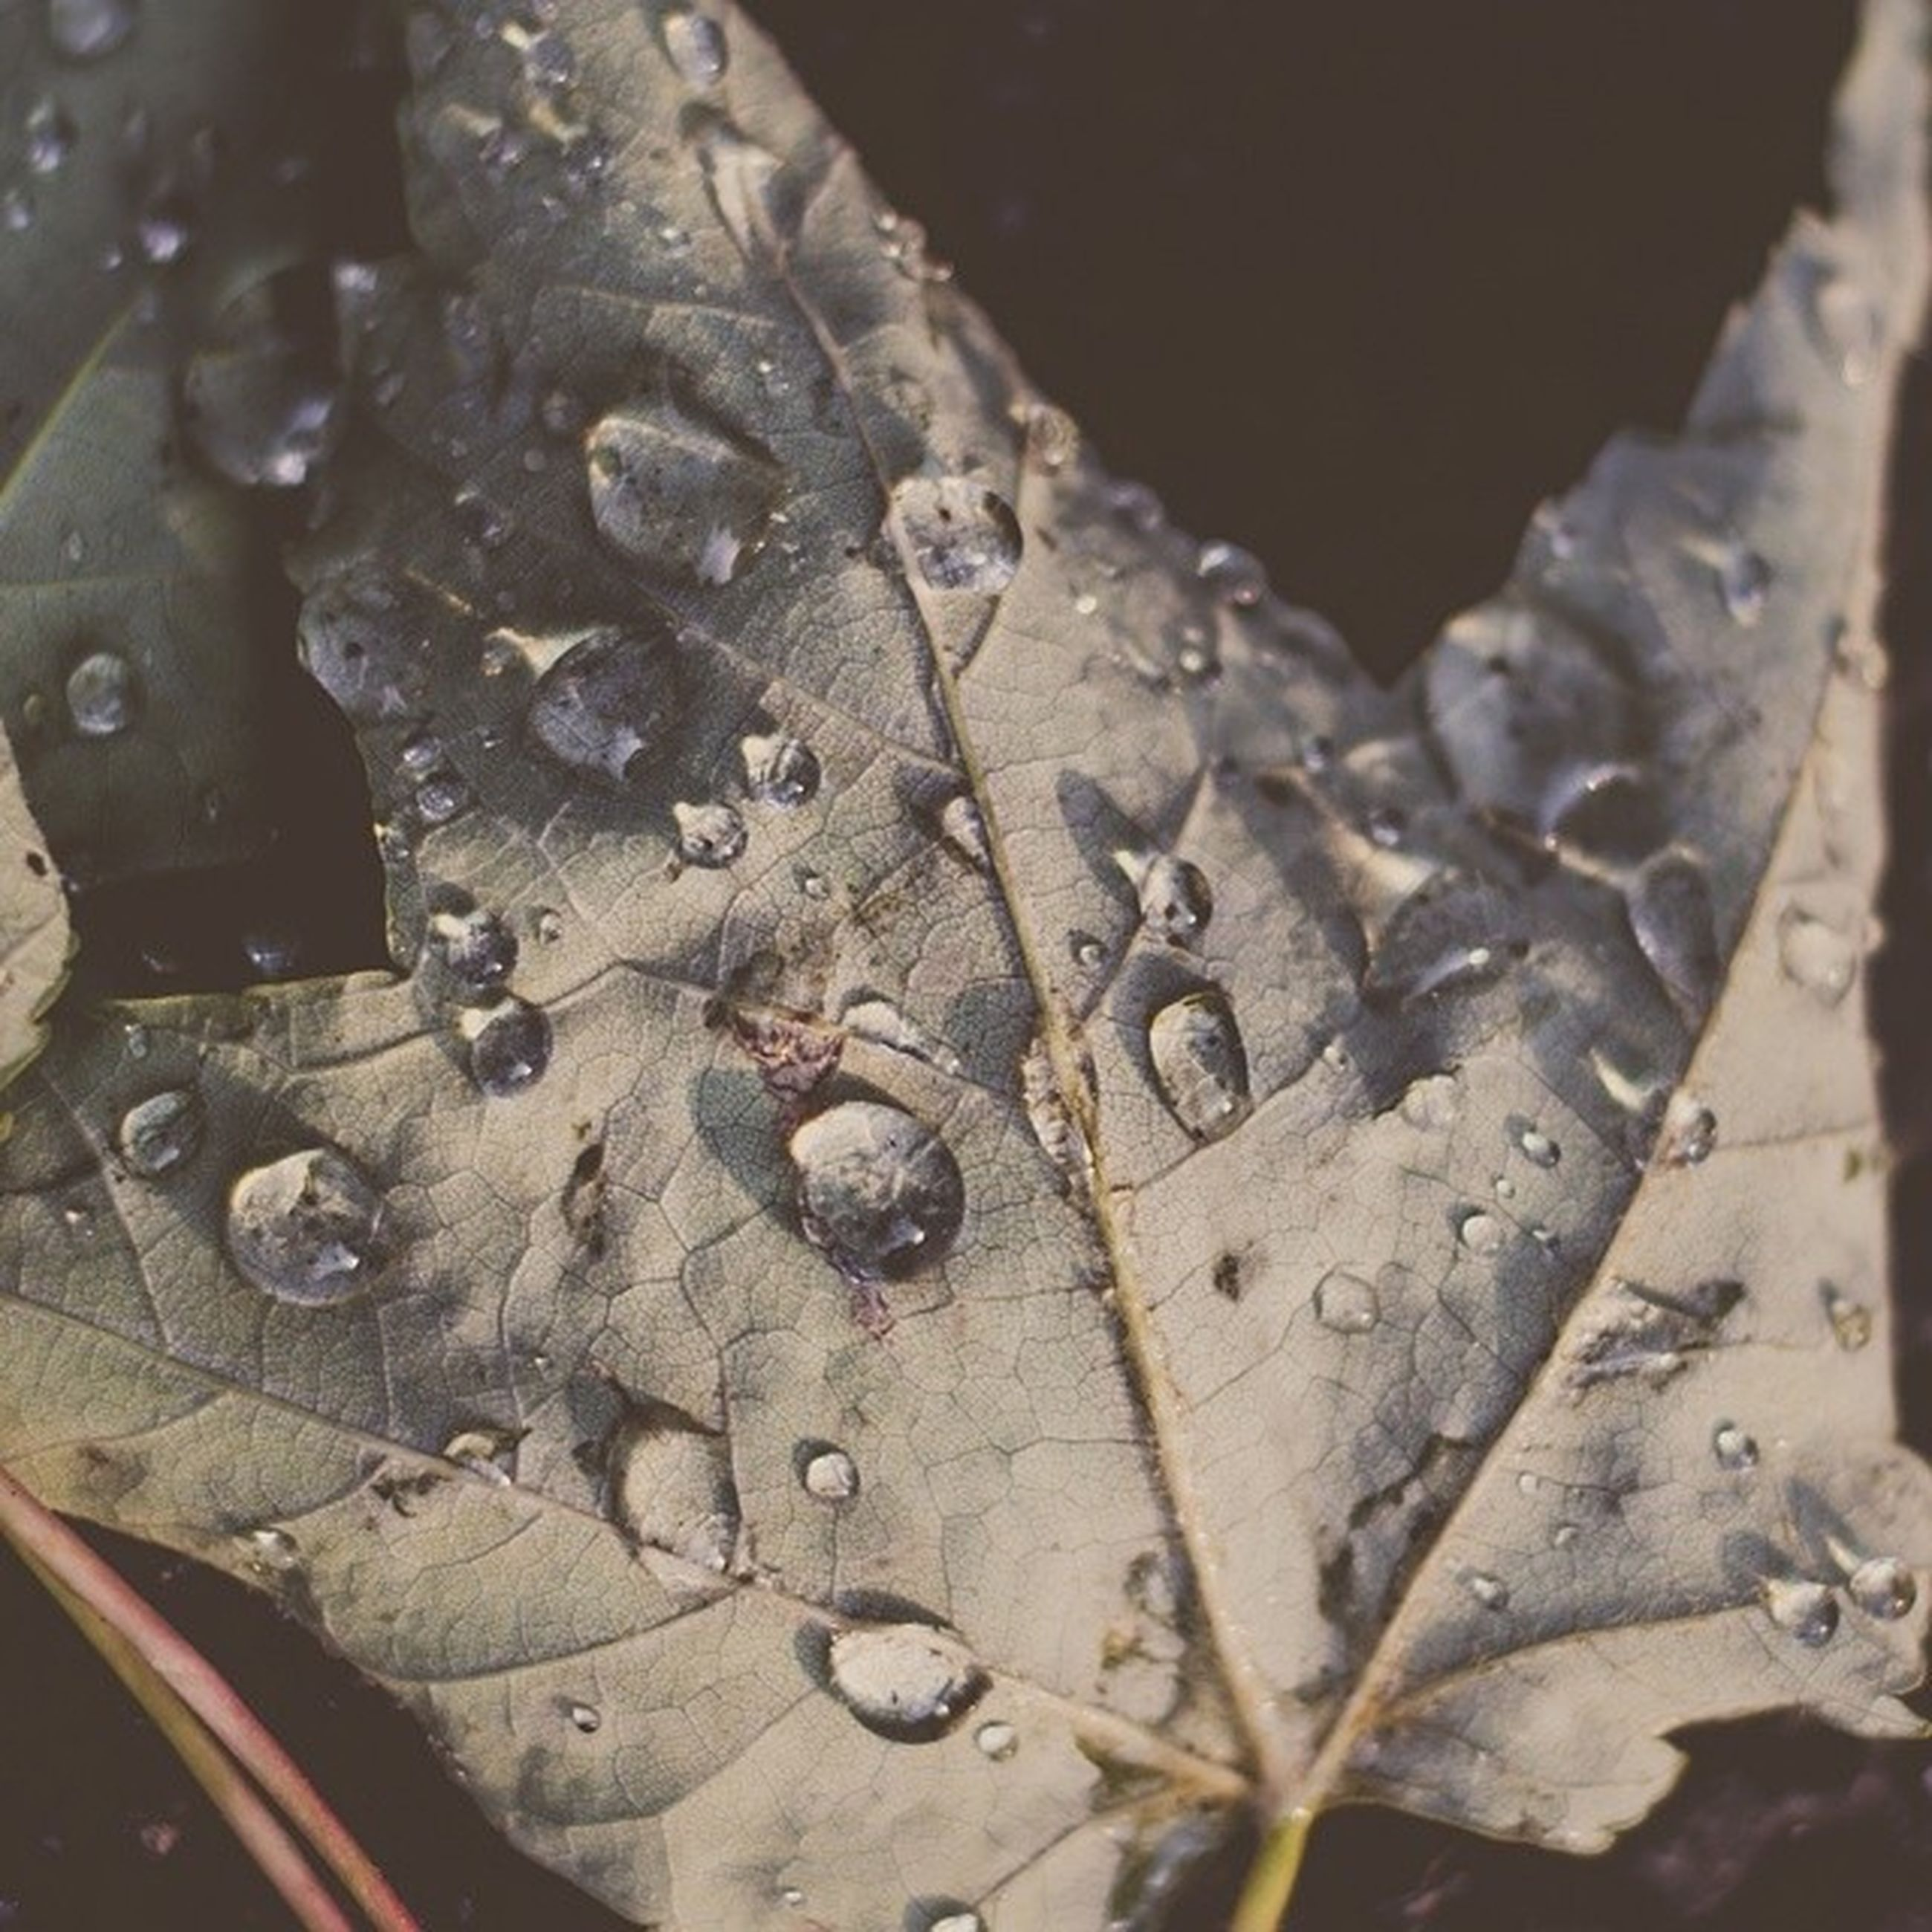 close-up, drop, wet, water, focus on foreground, leaf, nature, season, high angle view, weather, selective focus, wood - material, outdoors, no people, day, detail, rain, textured, pattern, fragility